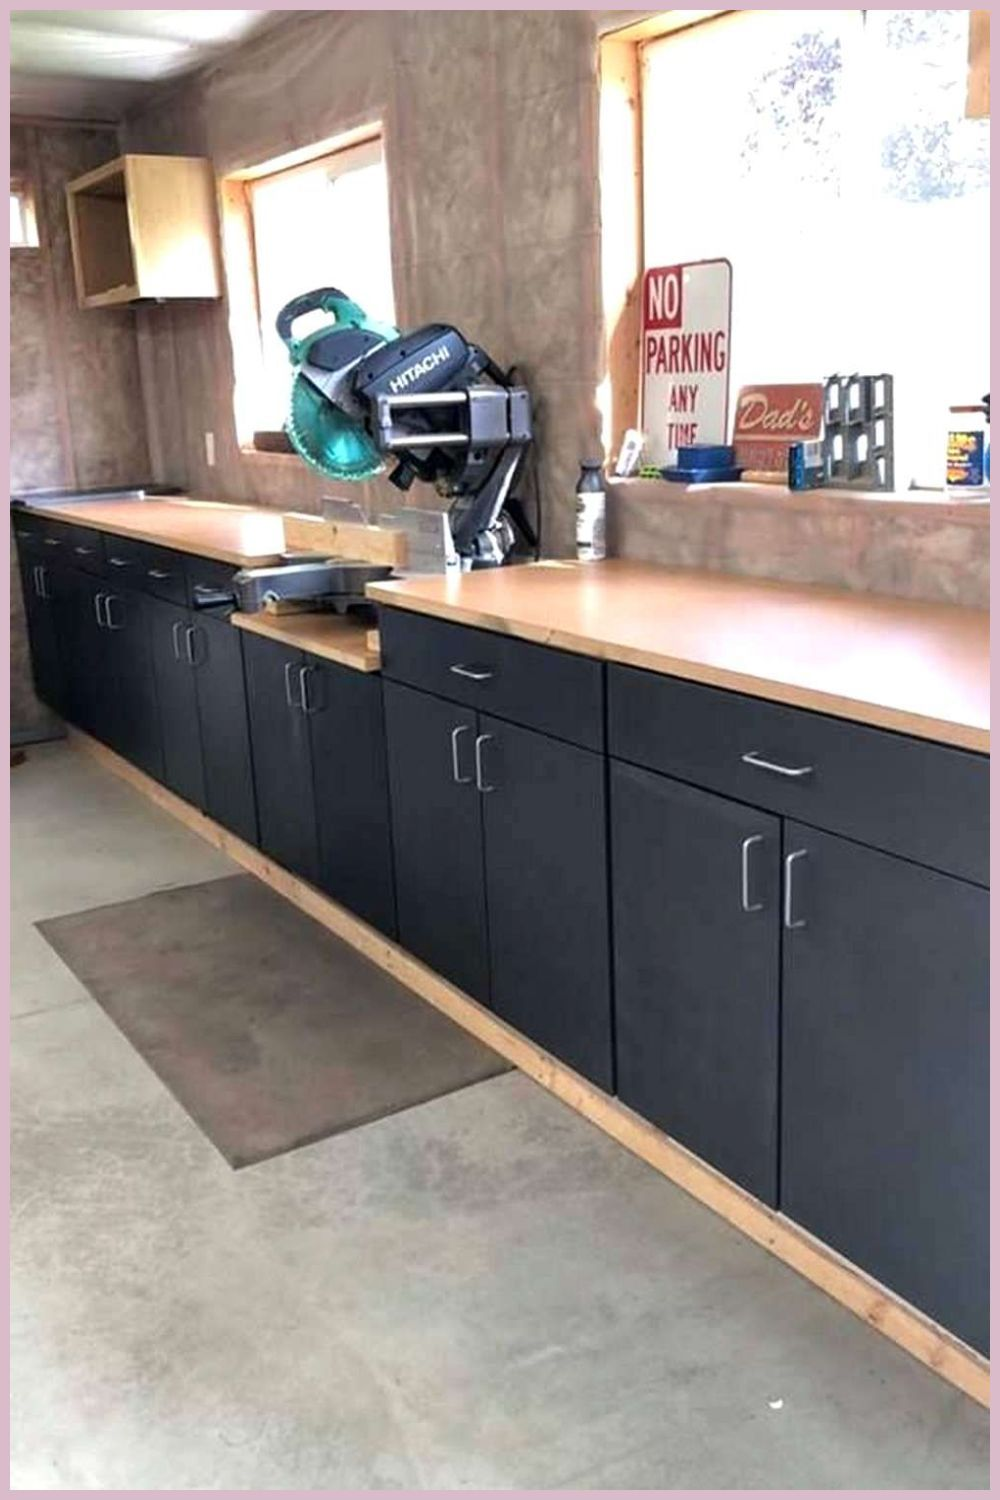 10 Nice Kitchen Cabinets Used In Garage Near Me Woodworking Garage Layout Woodworking Sho Used Kitchen Cabinets Kitchen Cabinets For Sale Cabinets For Sale